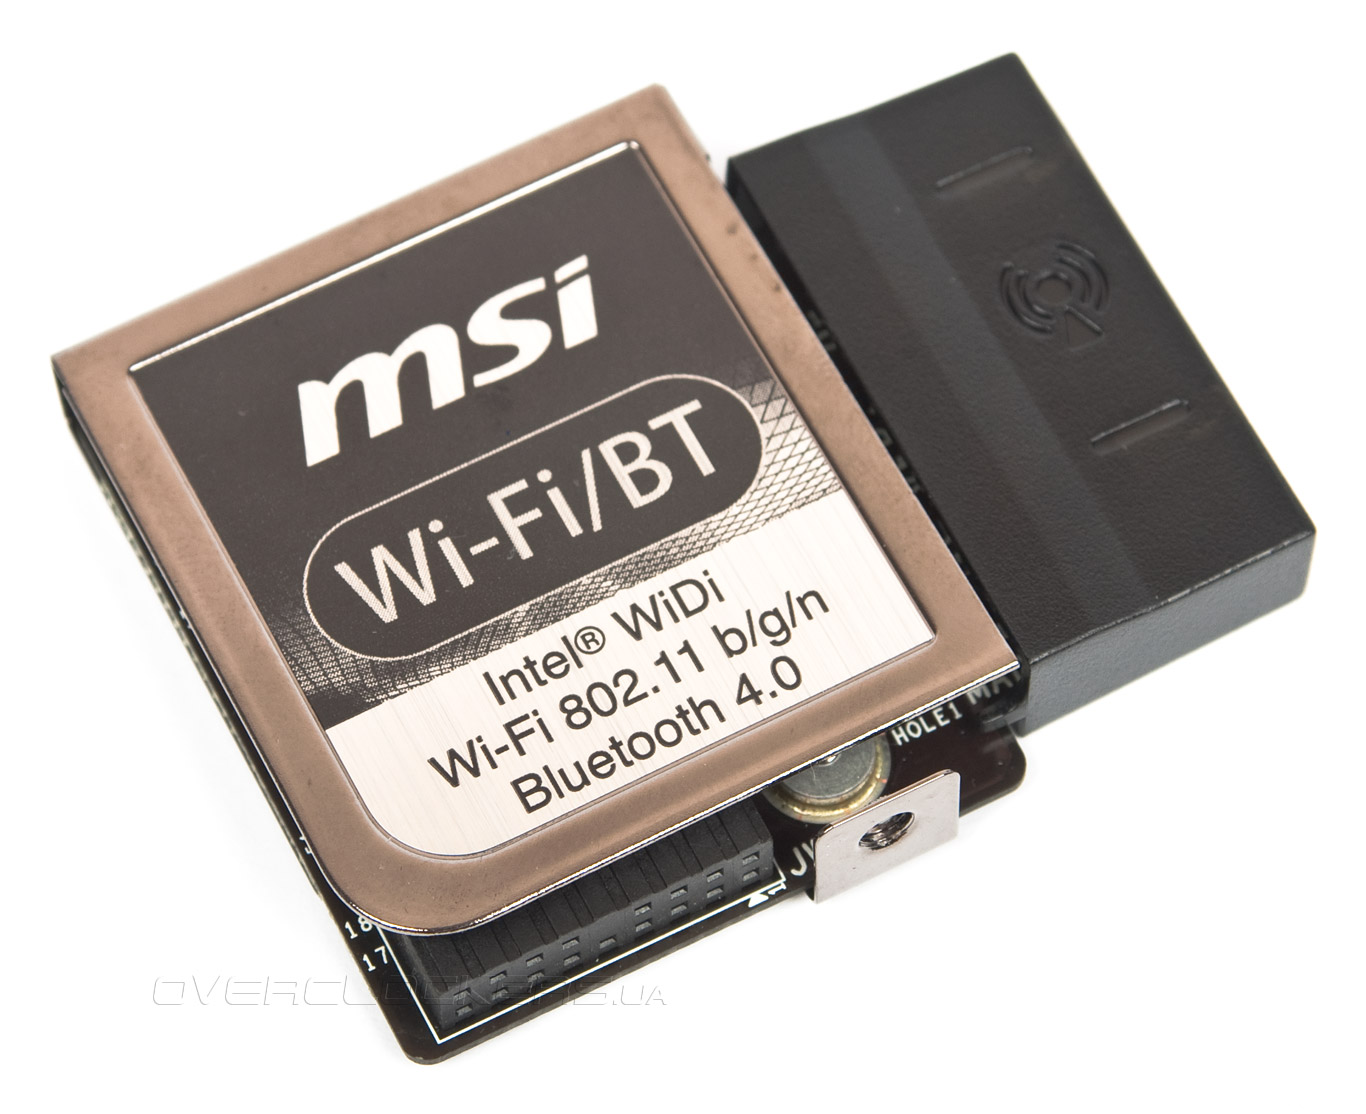 DRIVERS FOR MSI Z87 MPOWER MAX INTEL BLUETOOTH